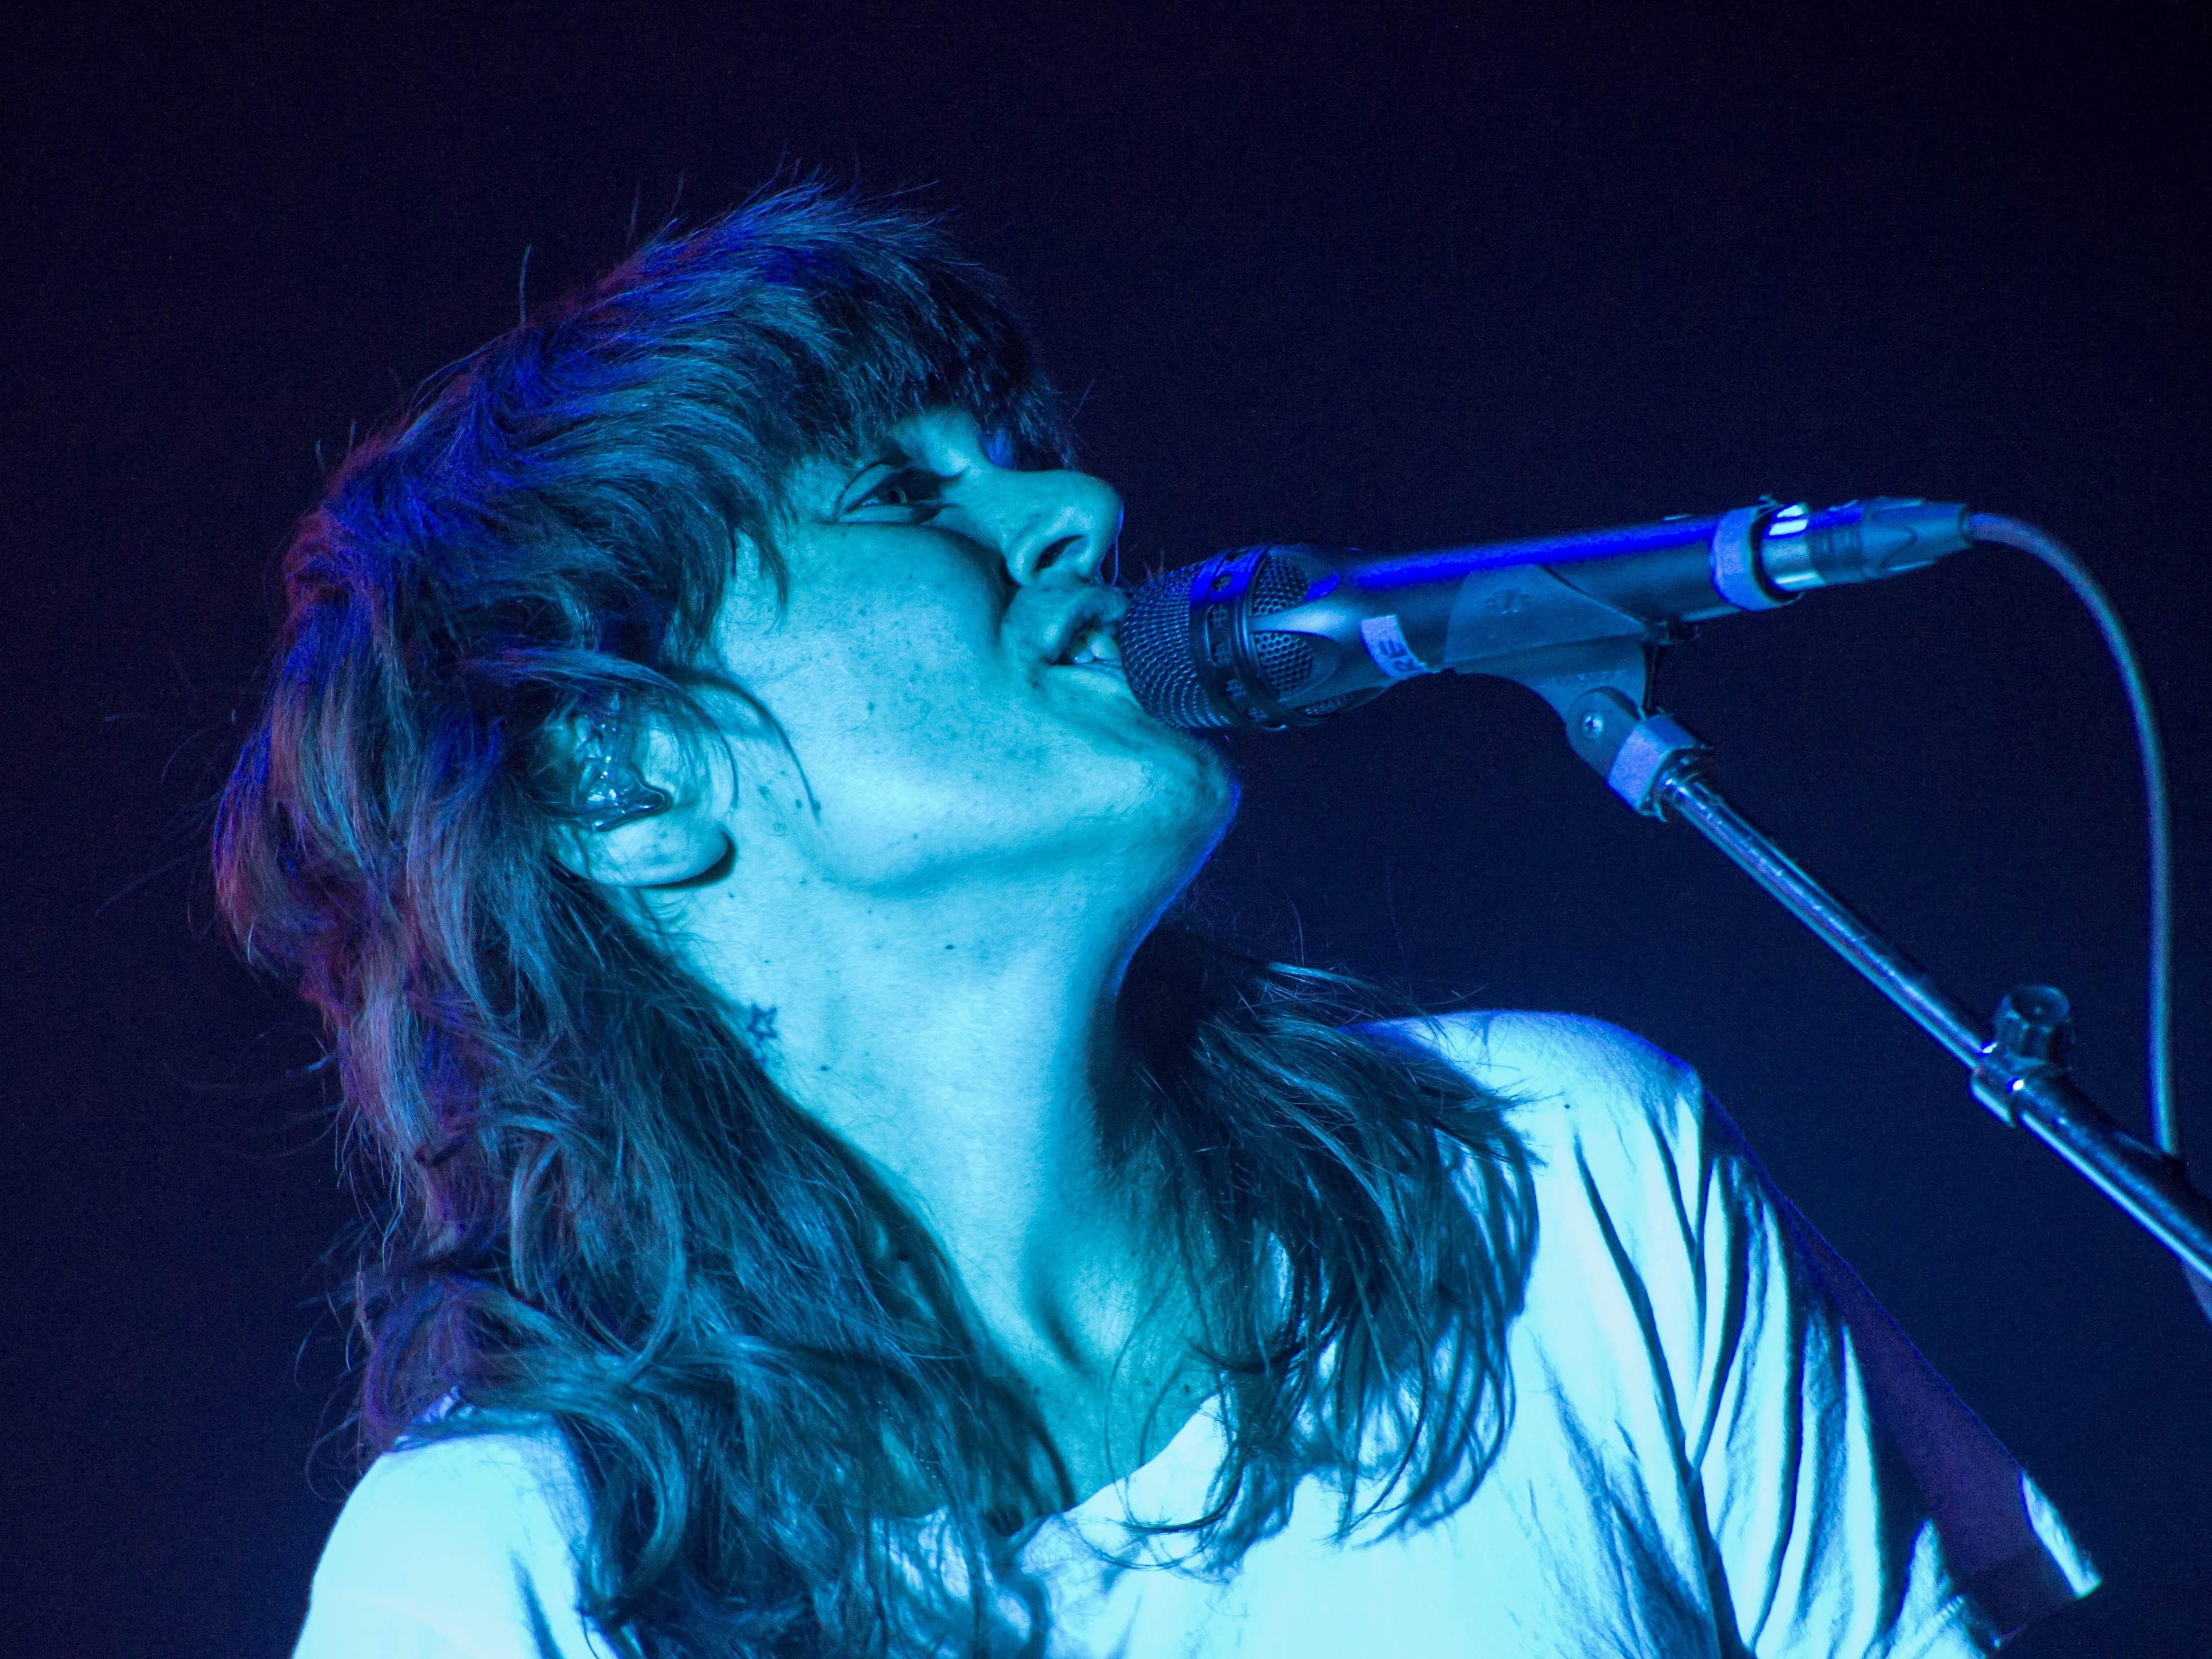 Courtney Barnett sings during her show at the Pabst Theater on Oct. 17, 2018.